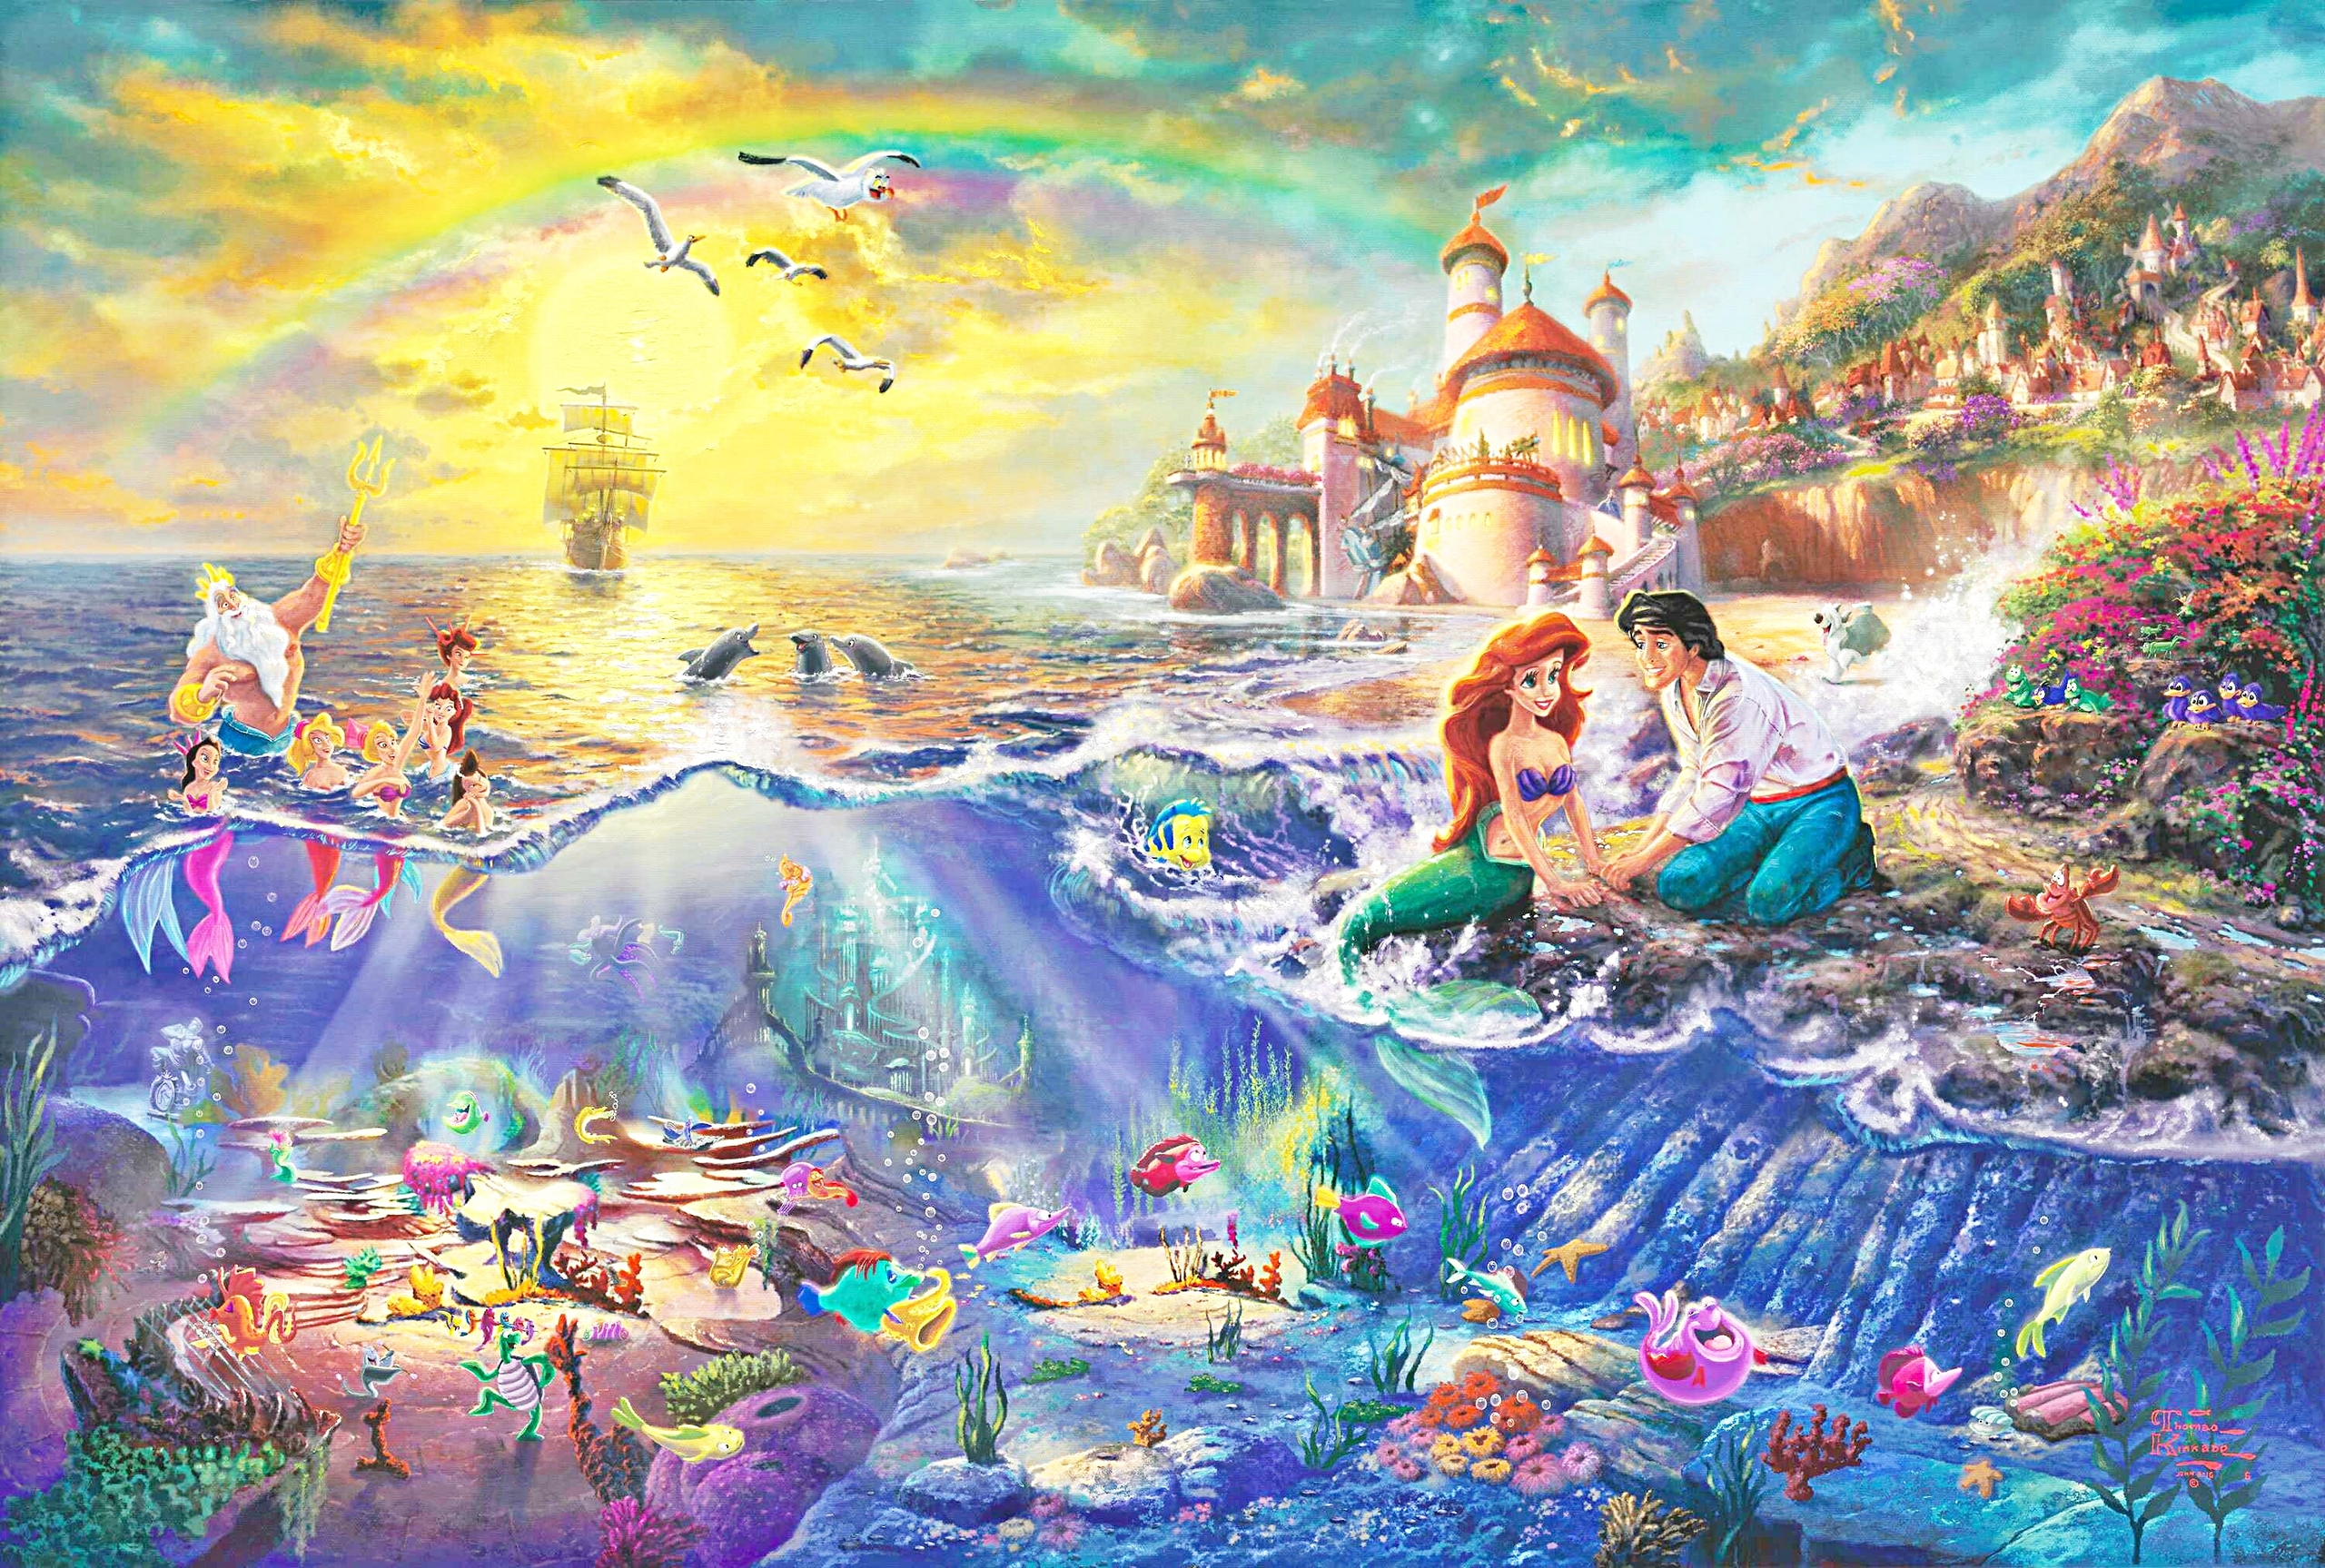 Thomas Kinkade's Disney Paintings - The Little Mermaid